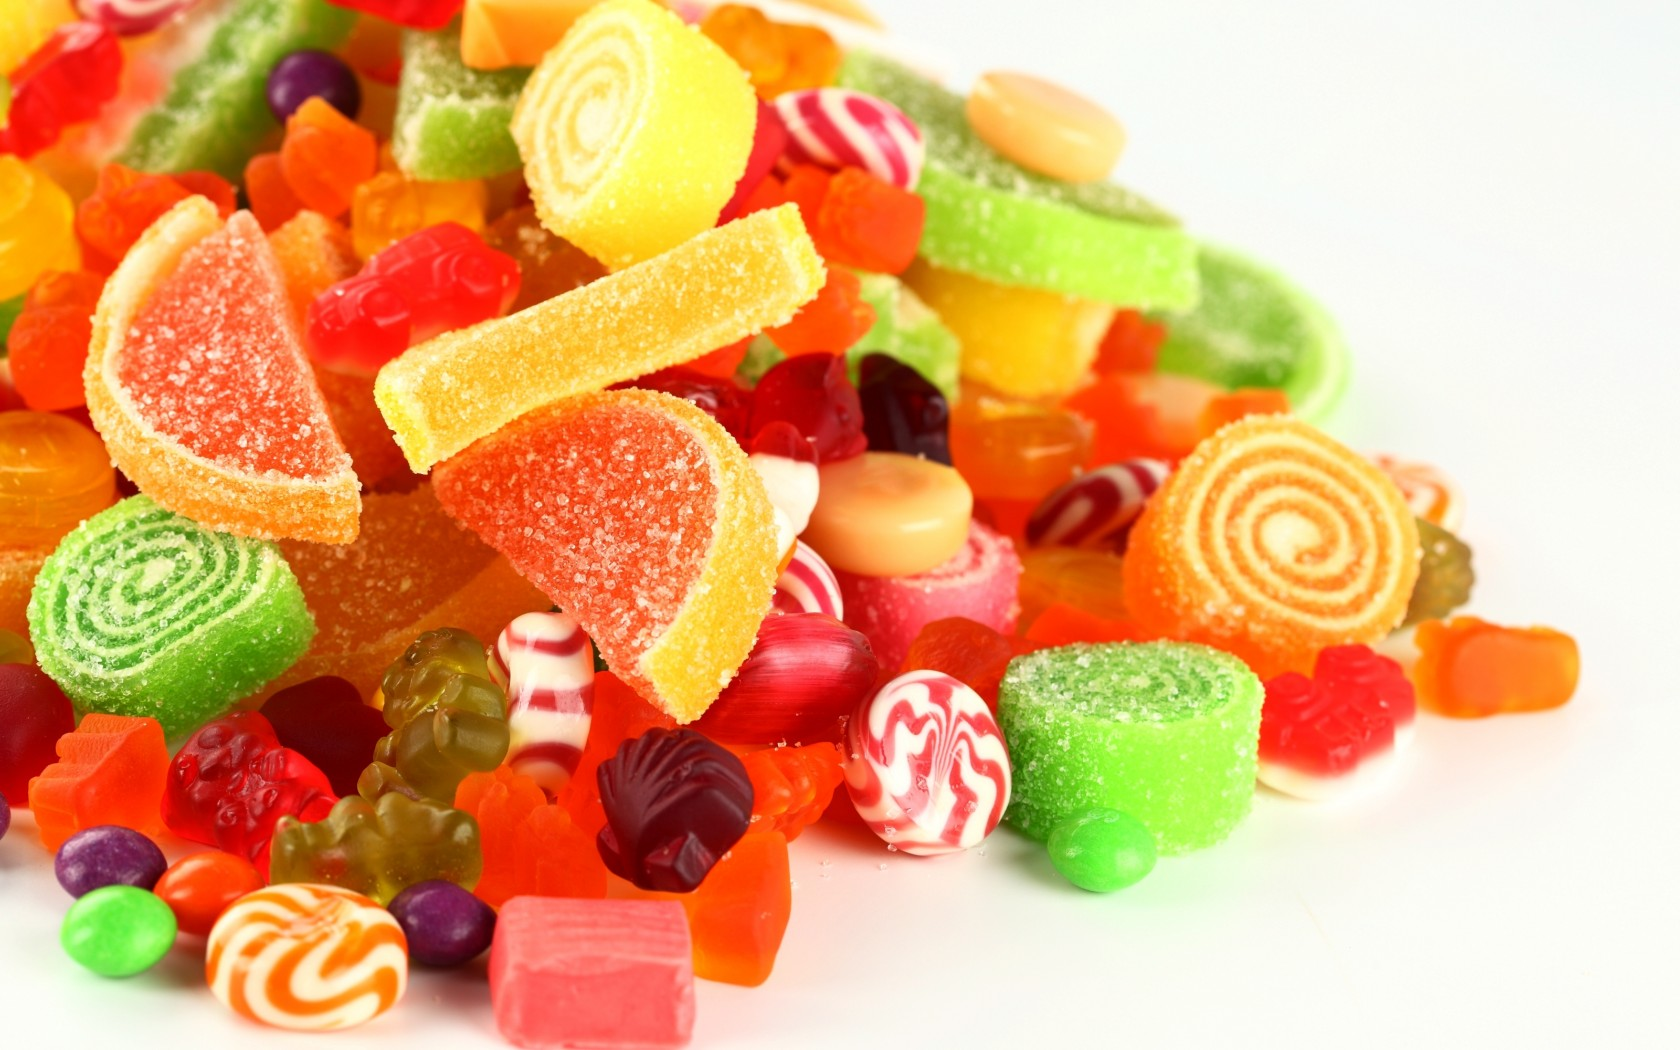 Candy images Sweeties! HD wallpaper and background photos ...